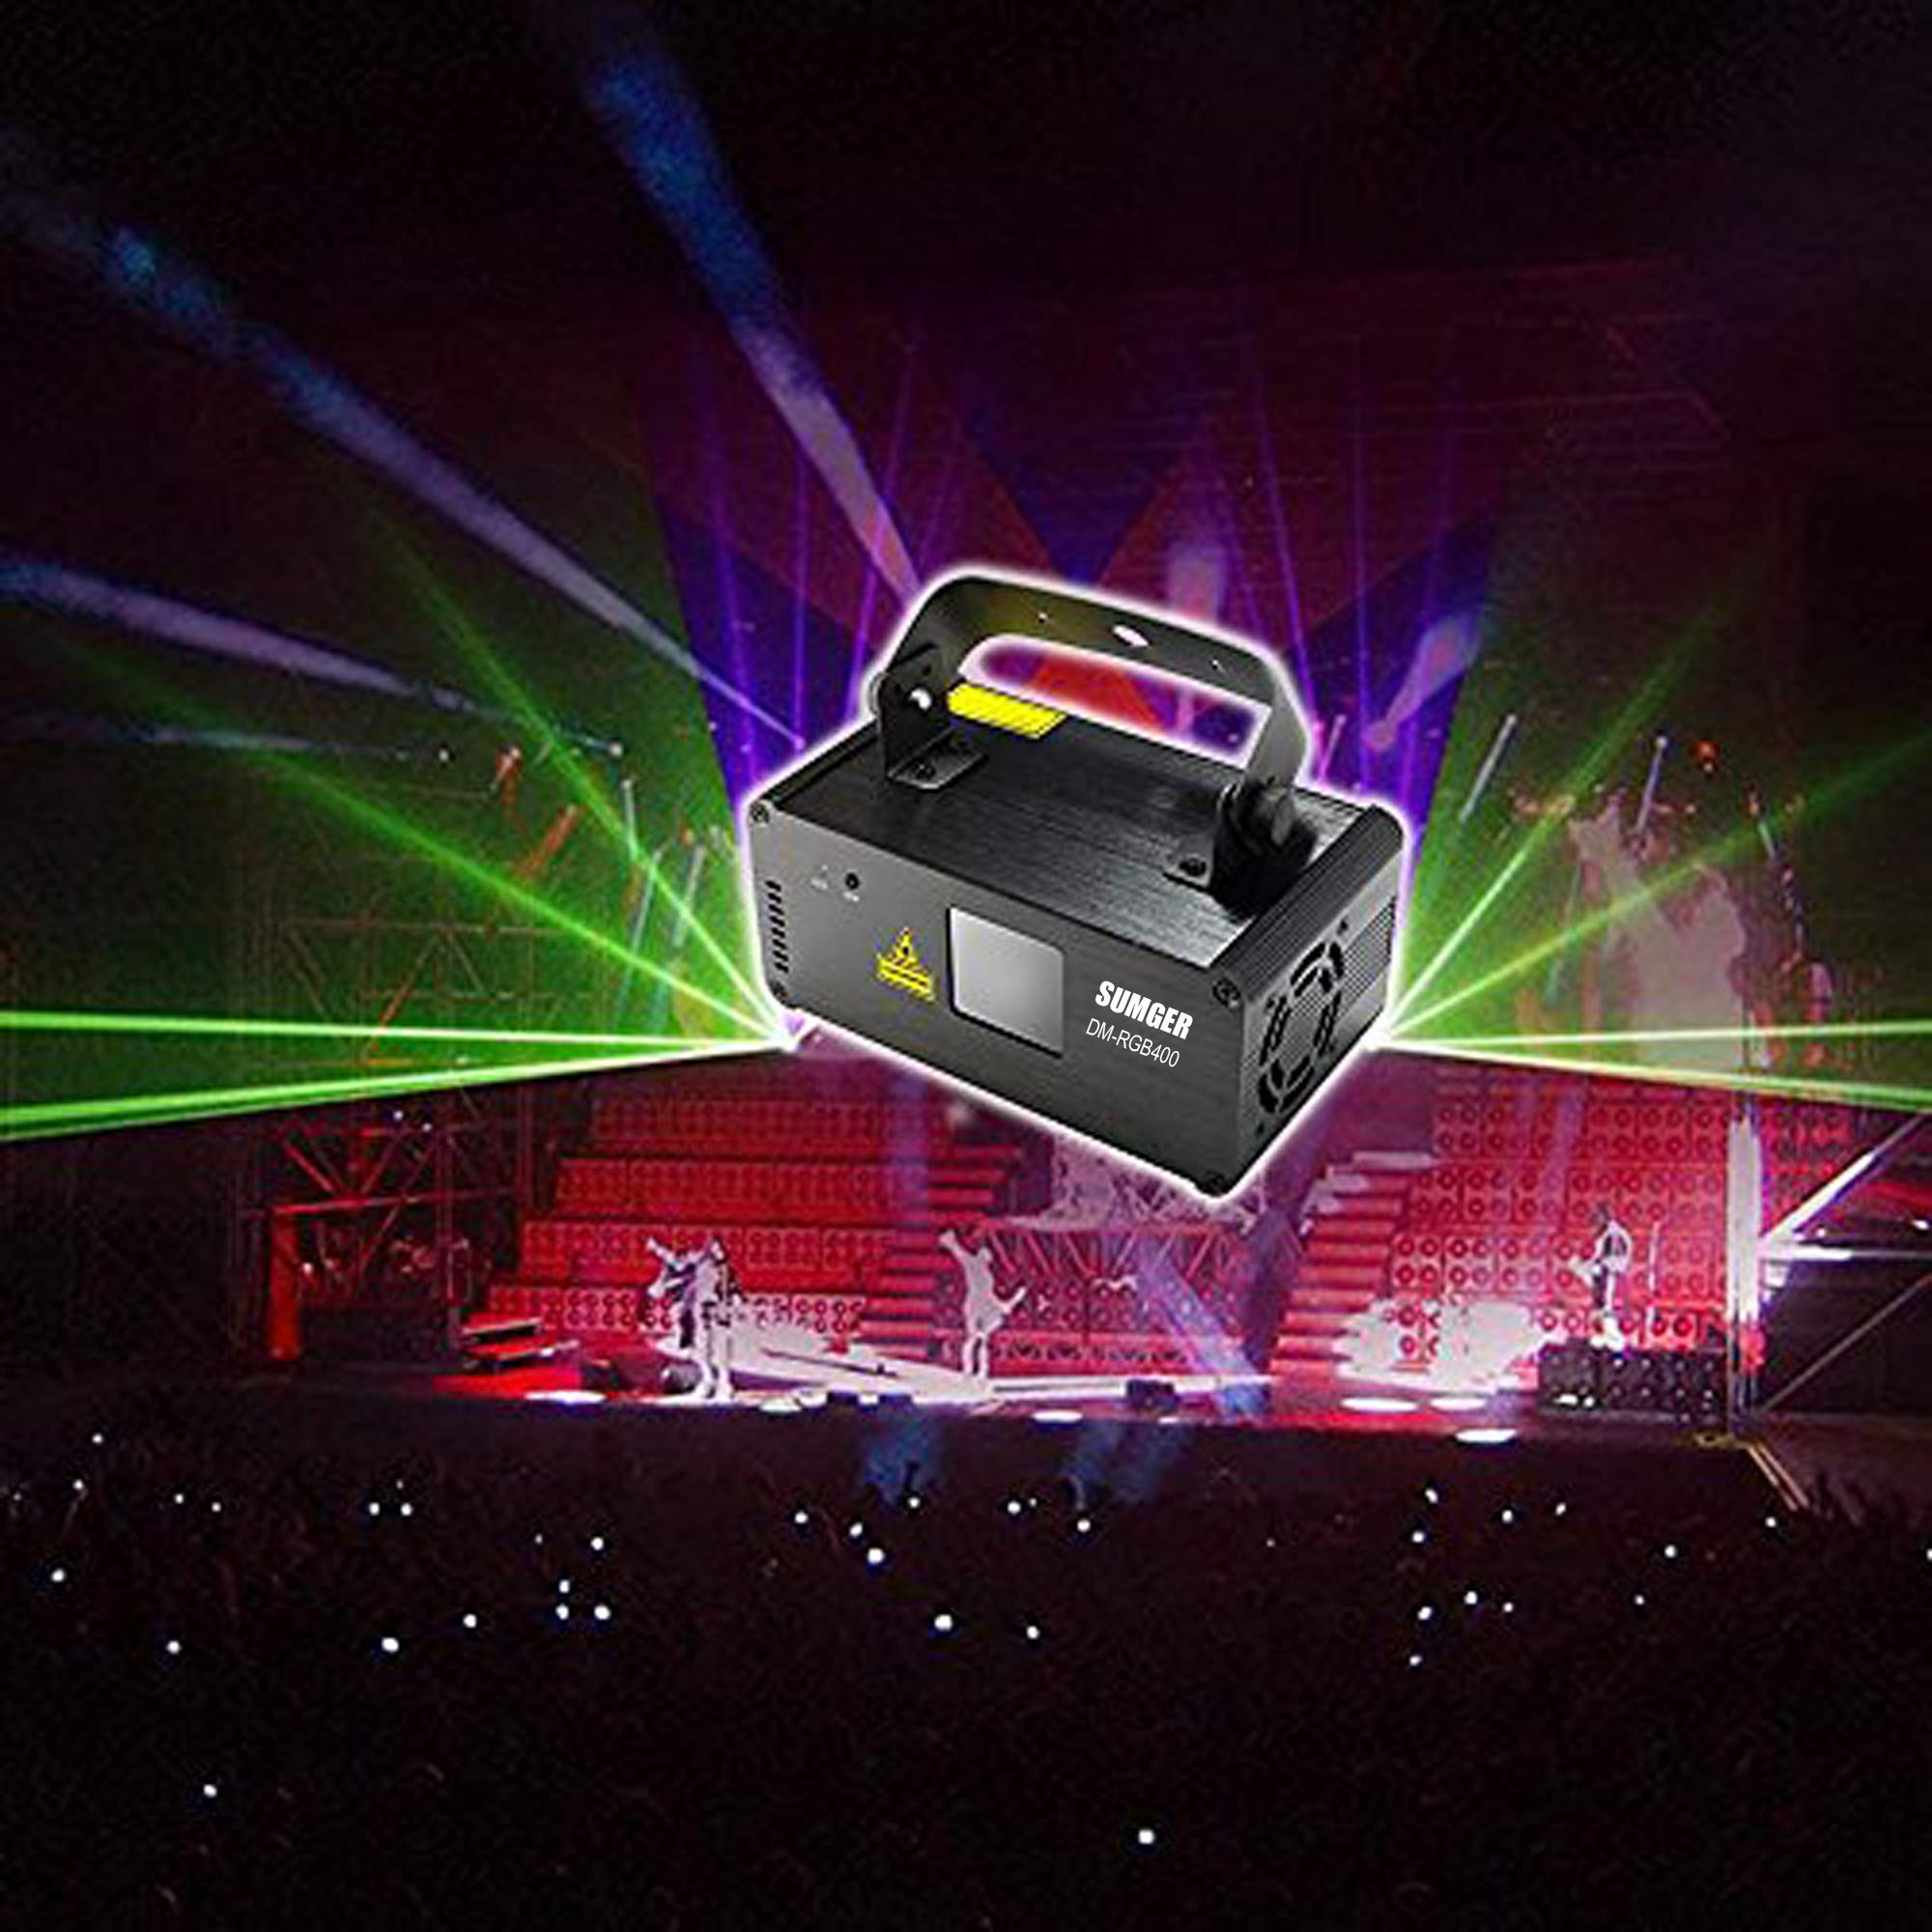 Sumger Professional Projector illumination Activated